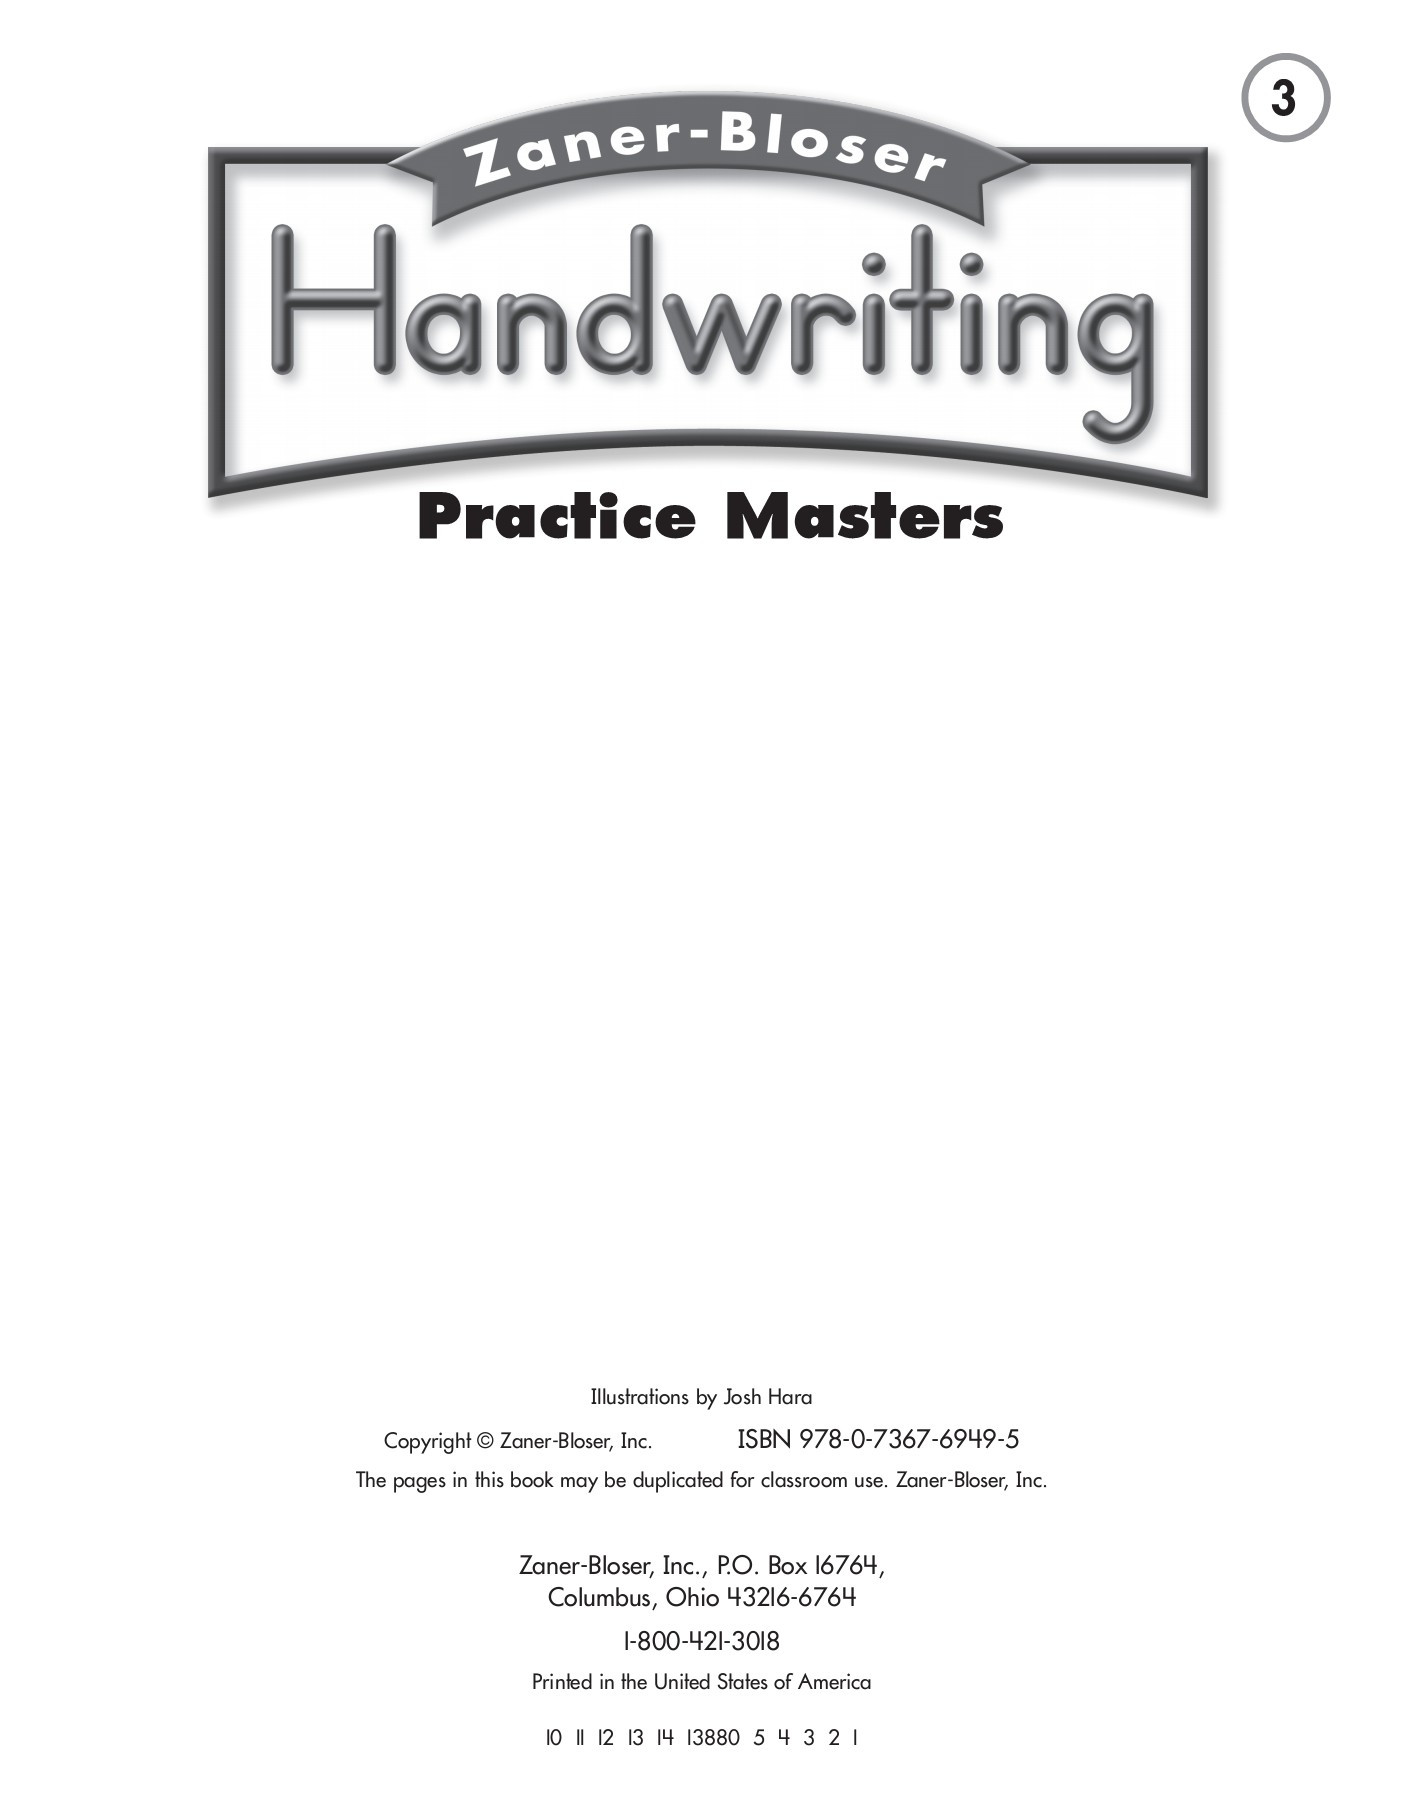 Zaner Bloser Handwriting Worksheet Cursive Handwriting Practice2 Pages 1 50 Text Version